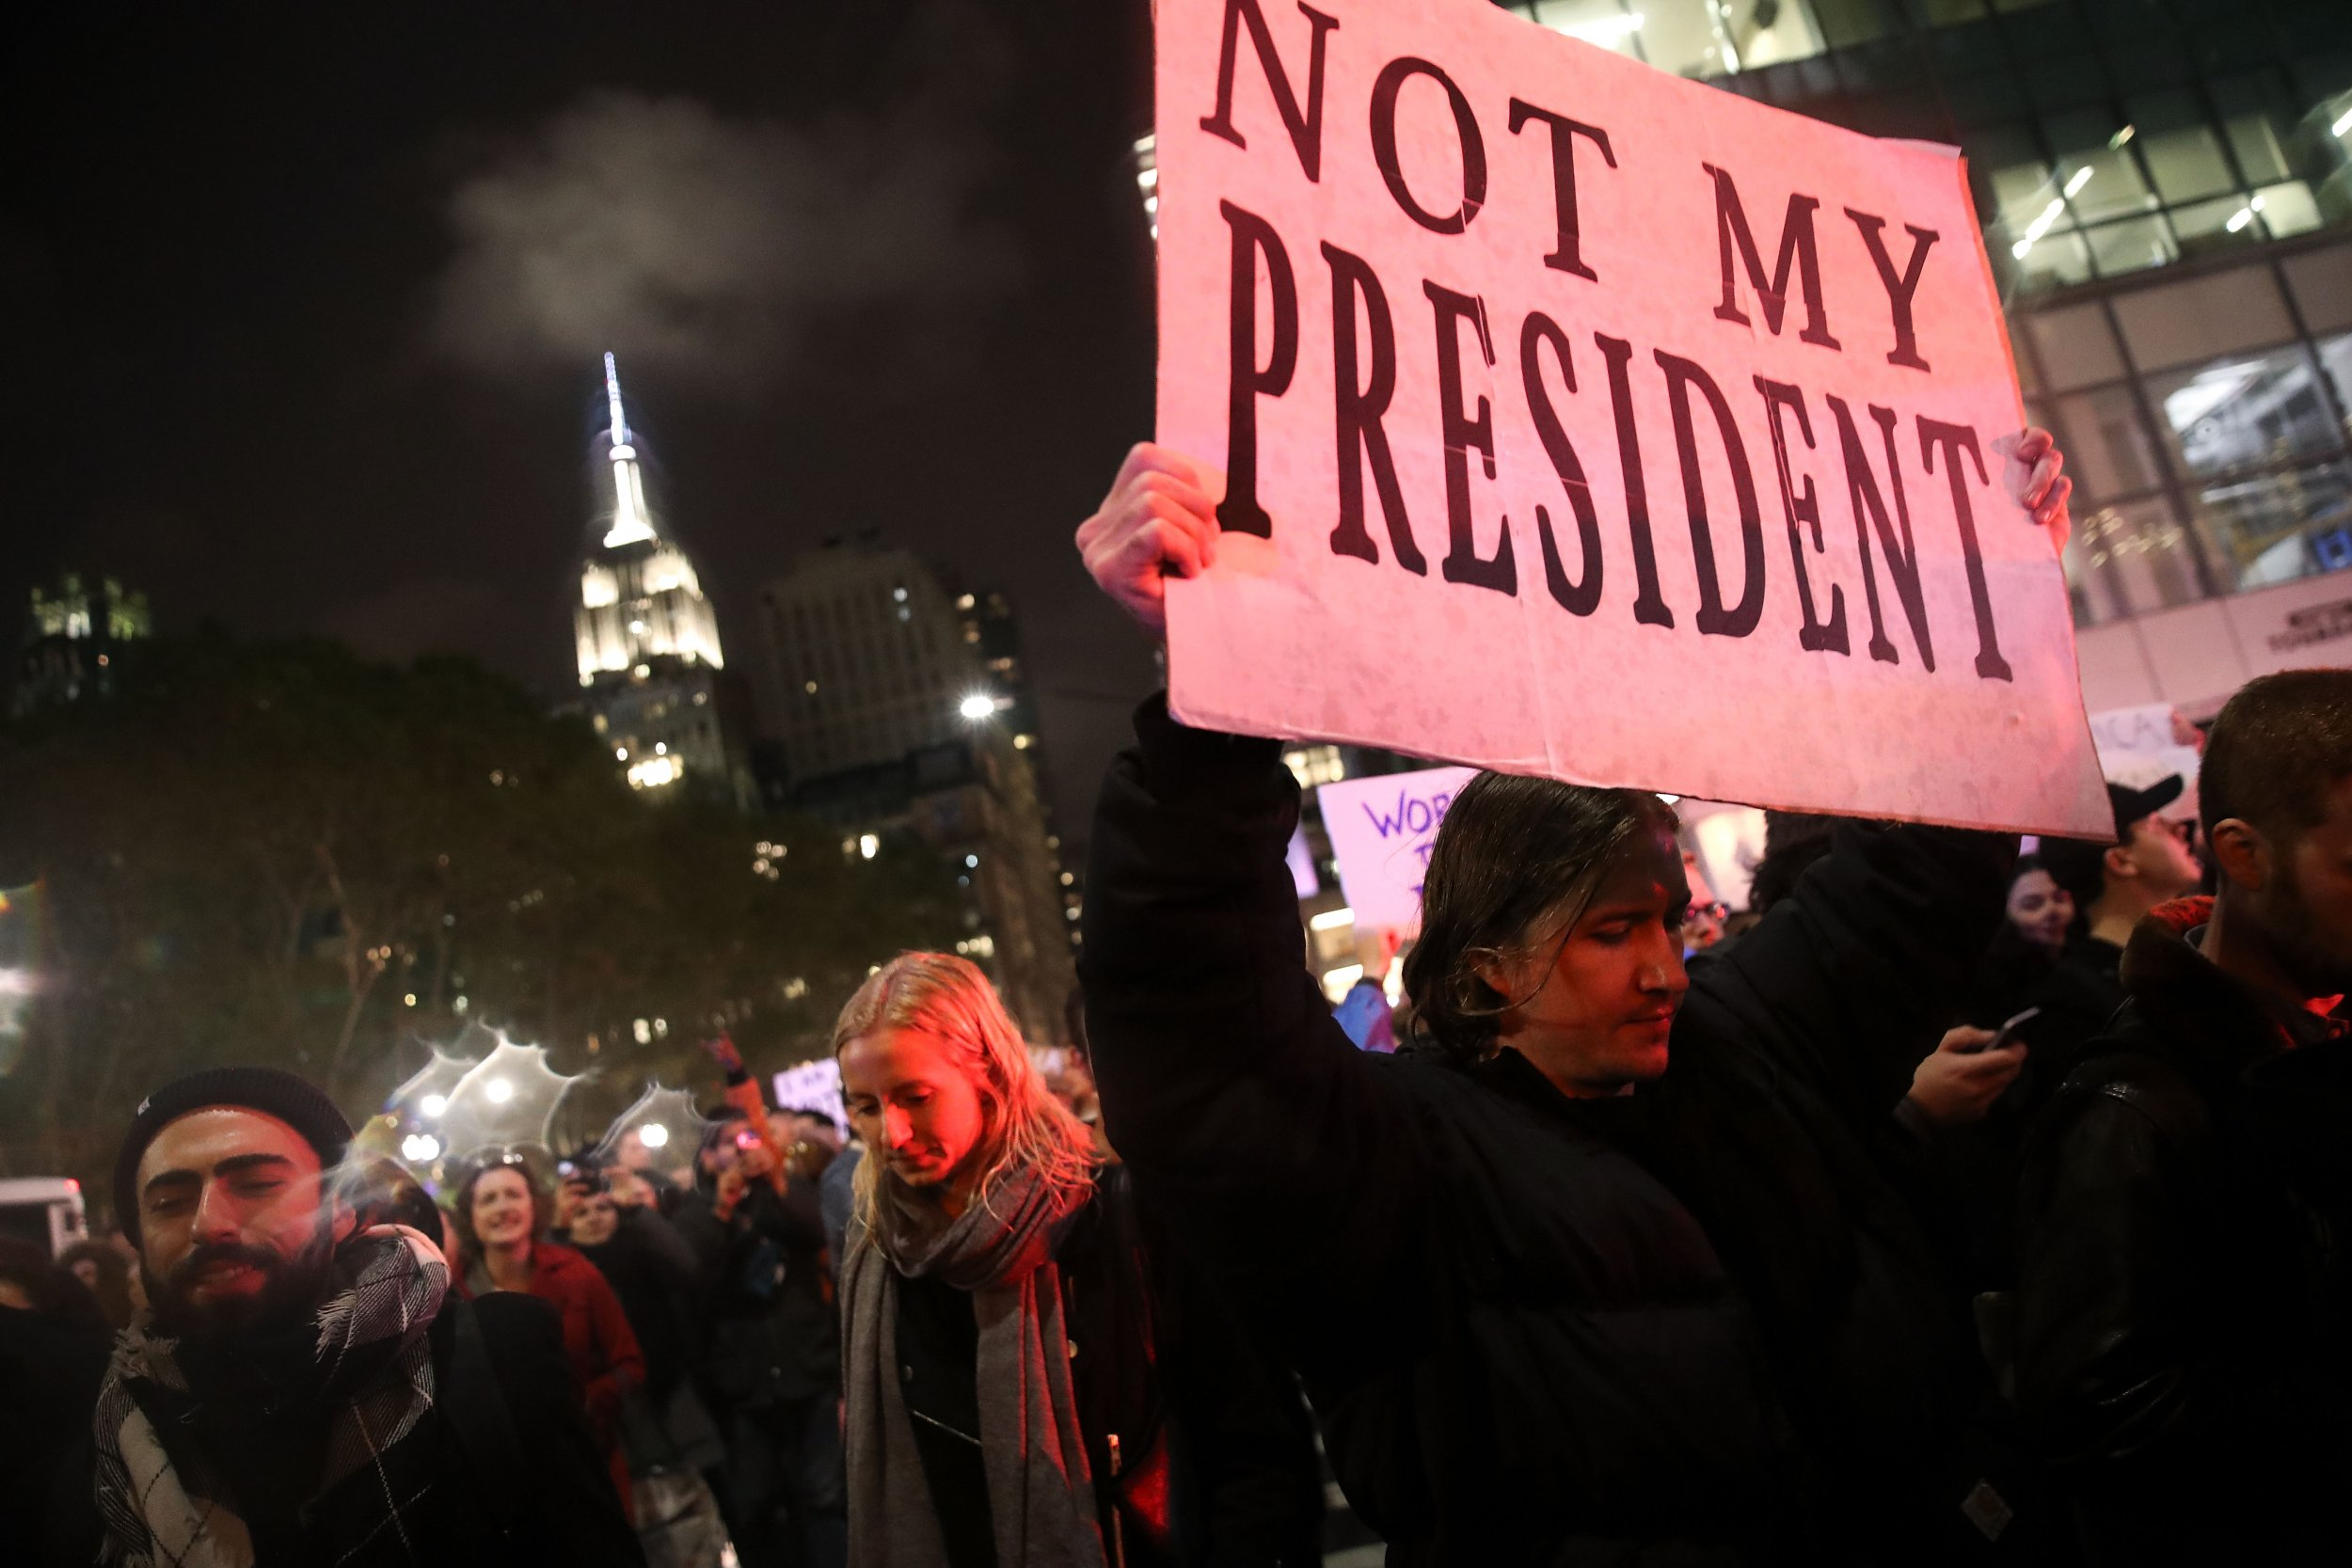 ... Our President:' Protests Against Donald Trump in Several U.S. Cities